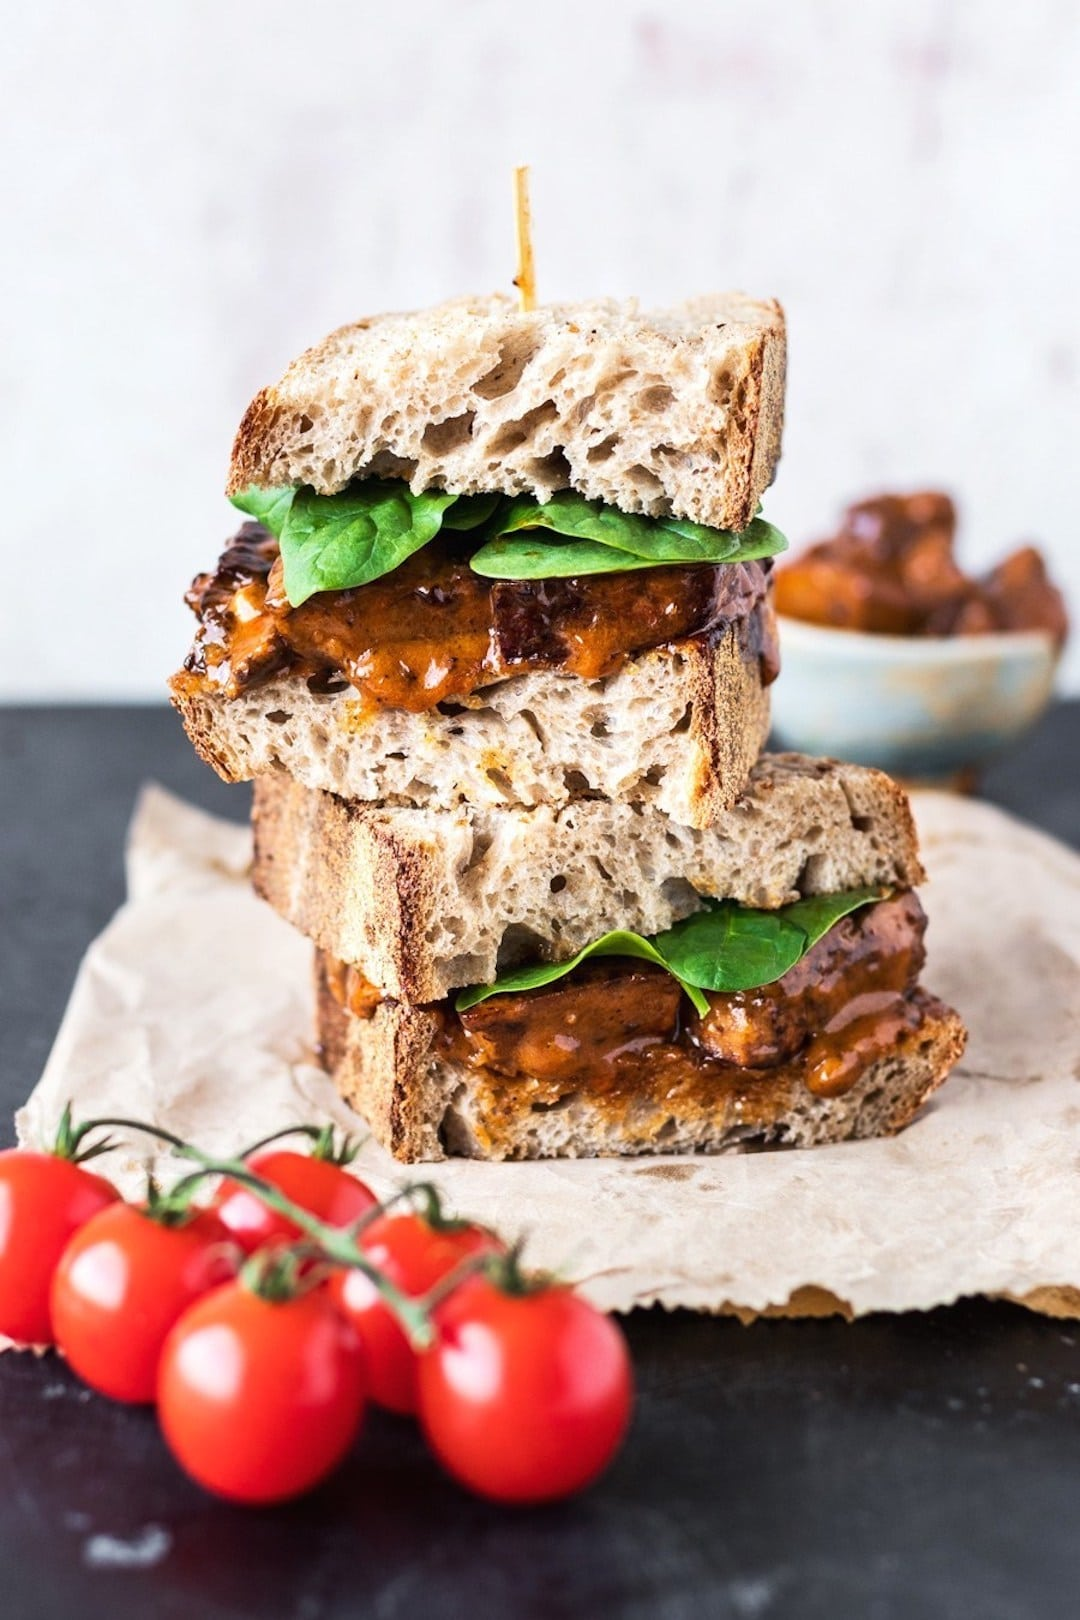 11 Yummy Plant Based Sandwiches - Vegan Buffalo Chicken Sandwich by This Vibrant World